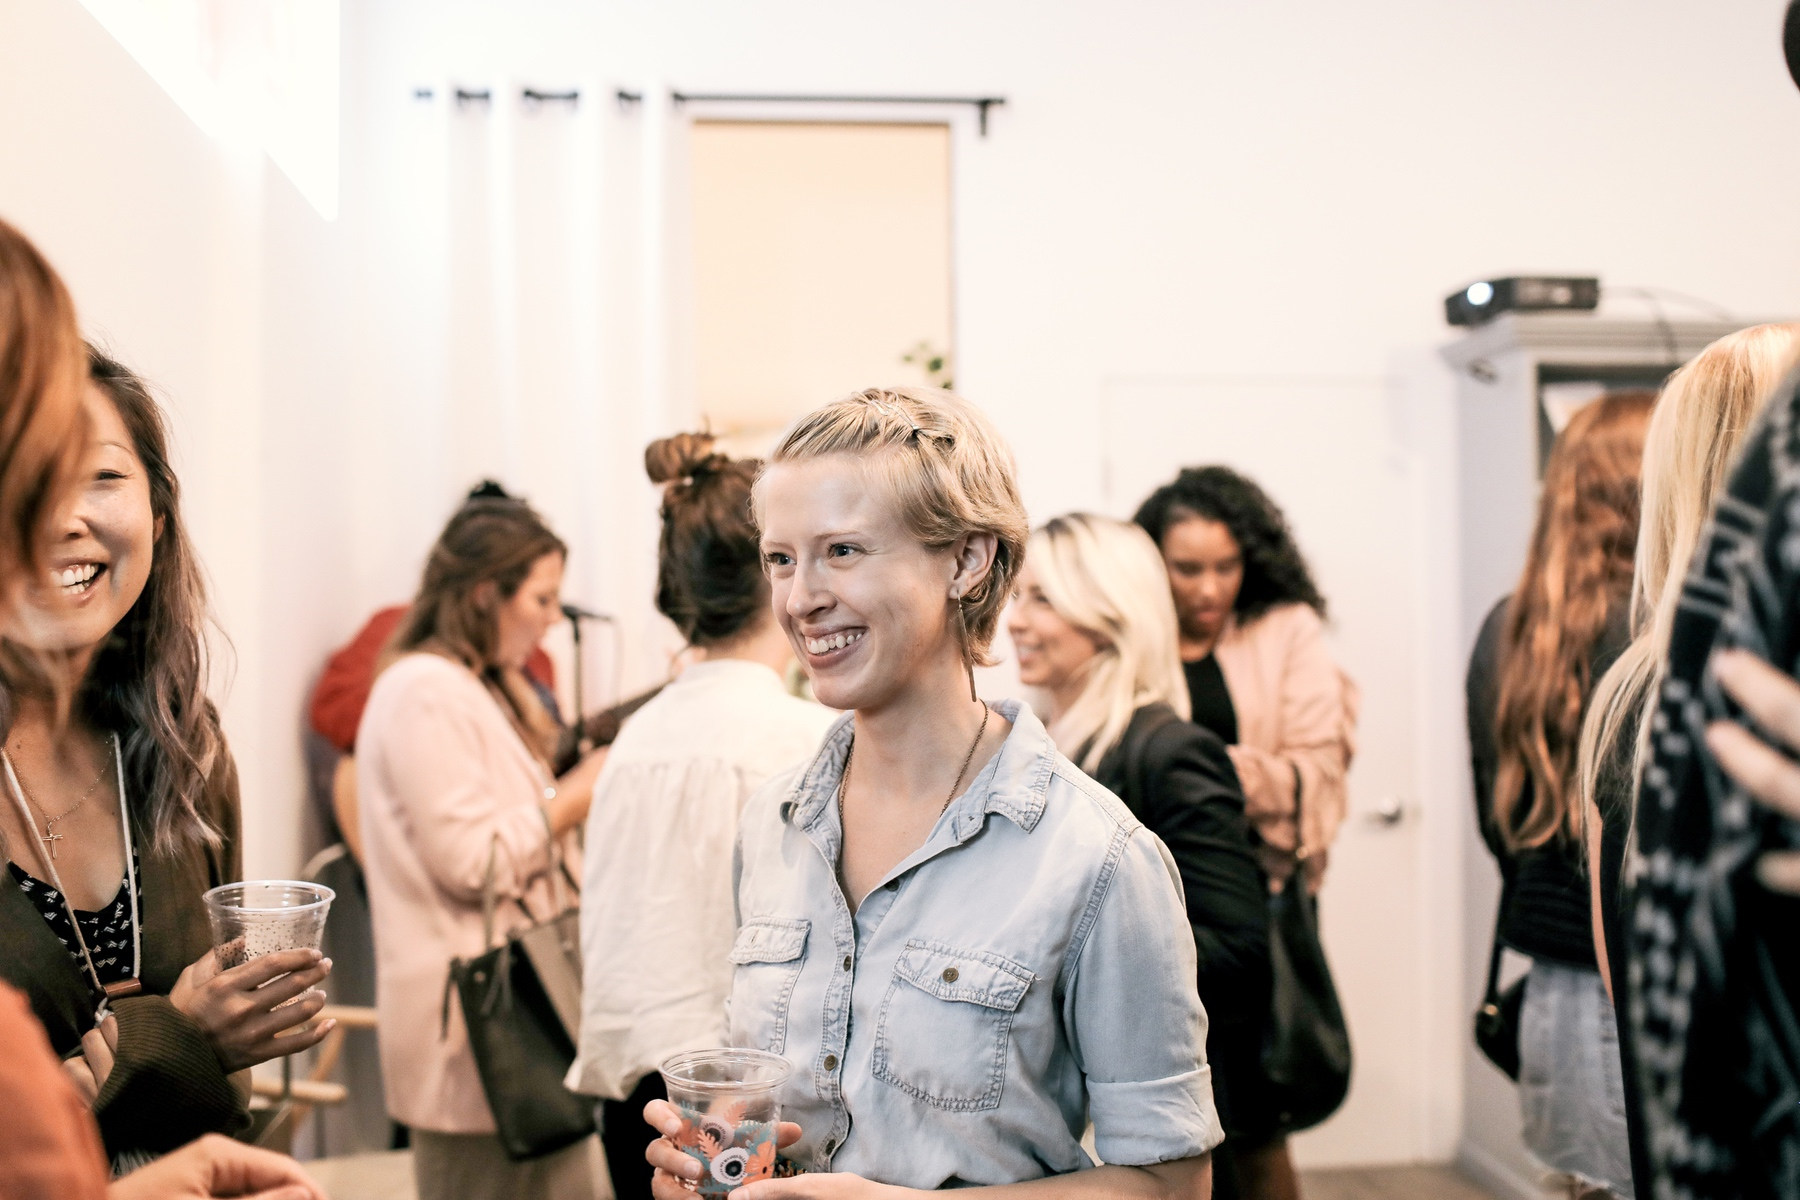 AN EVENING OF AUTHENTICITY AT THE YELLOW MEMBERSHIP LAUNCH PARTY